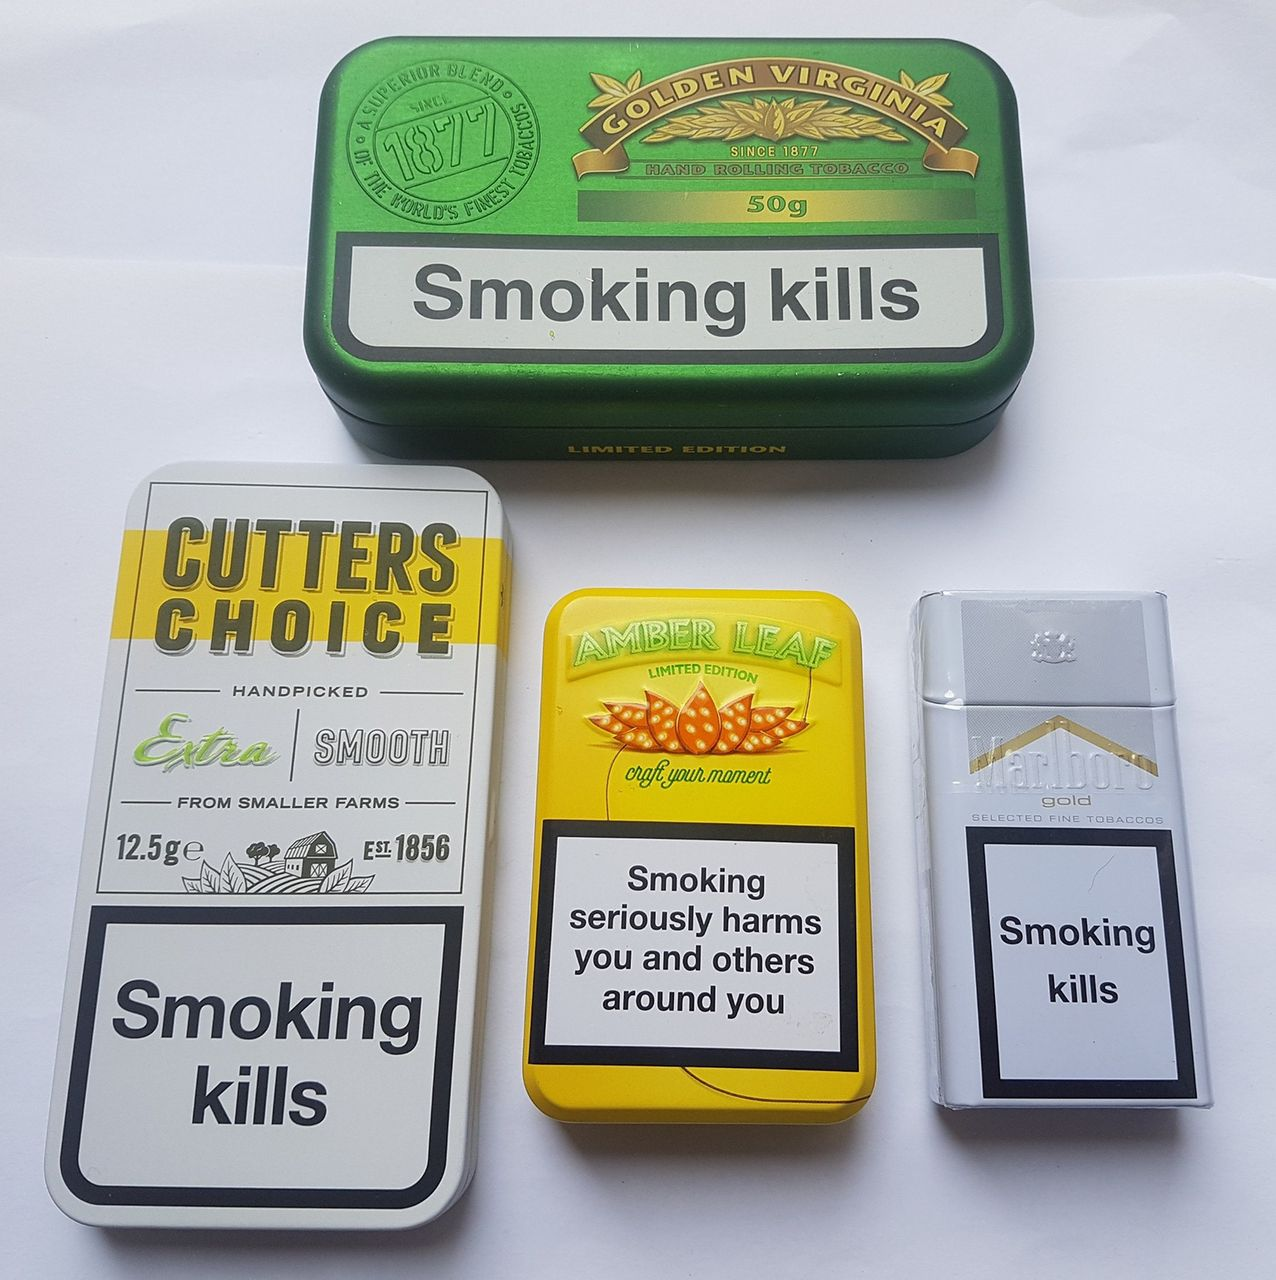 tobacco companies Major tobacco companies are beginning to put out government-mandated warnings about the addictive and deadly nature of their products.